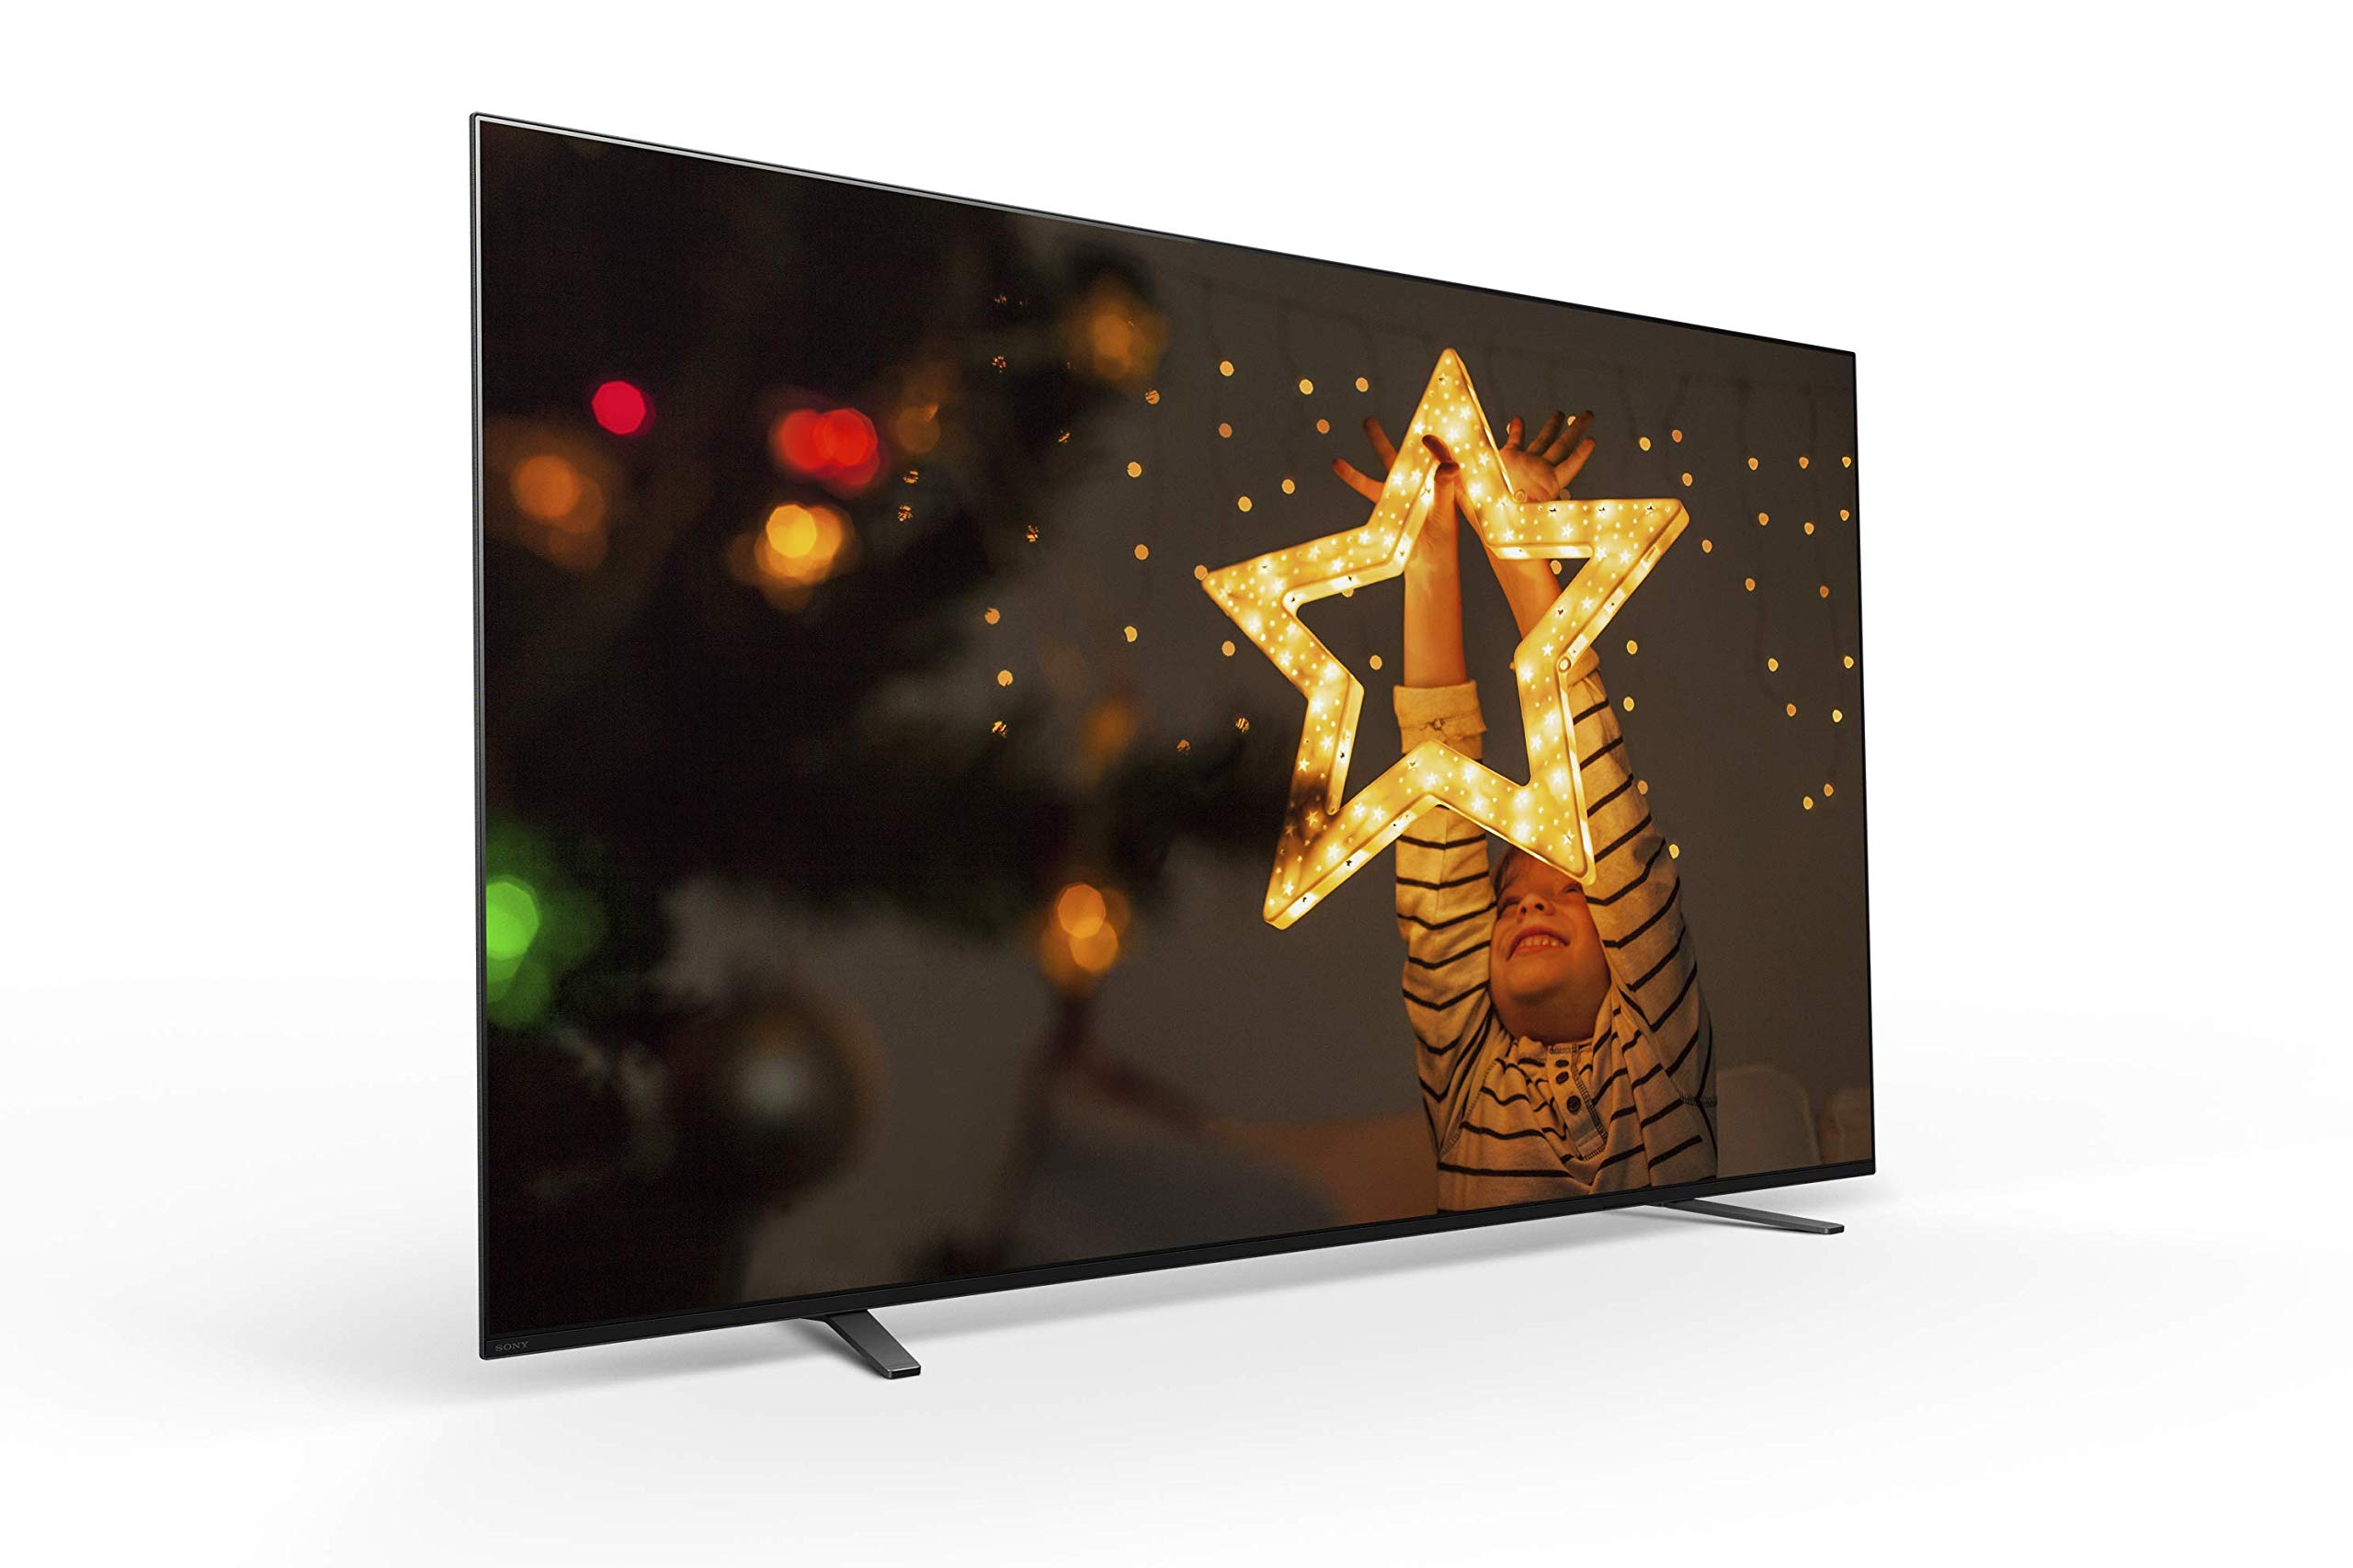 Sony A8H 65-inch TV: BRAVIA OLED 4K Ultra HD Smart TV with HDR and Alexa Compatibility - 2020 Model